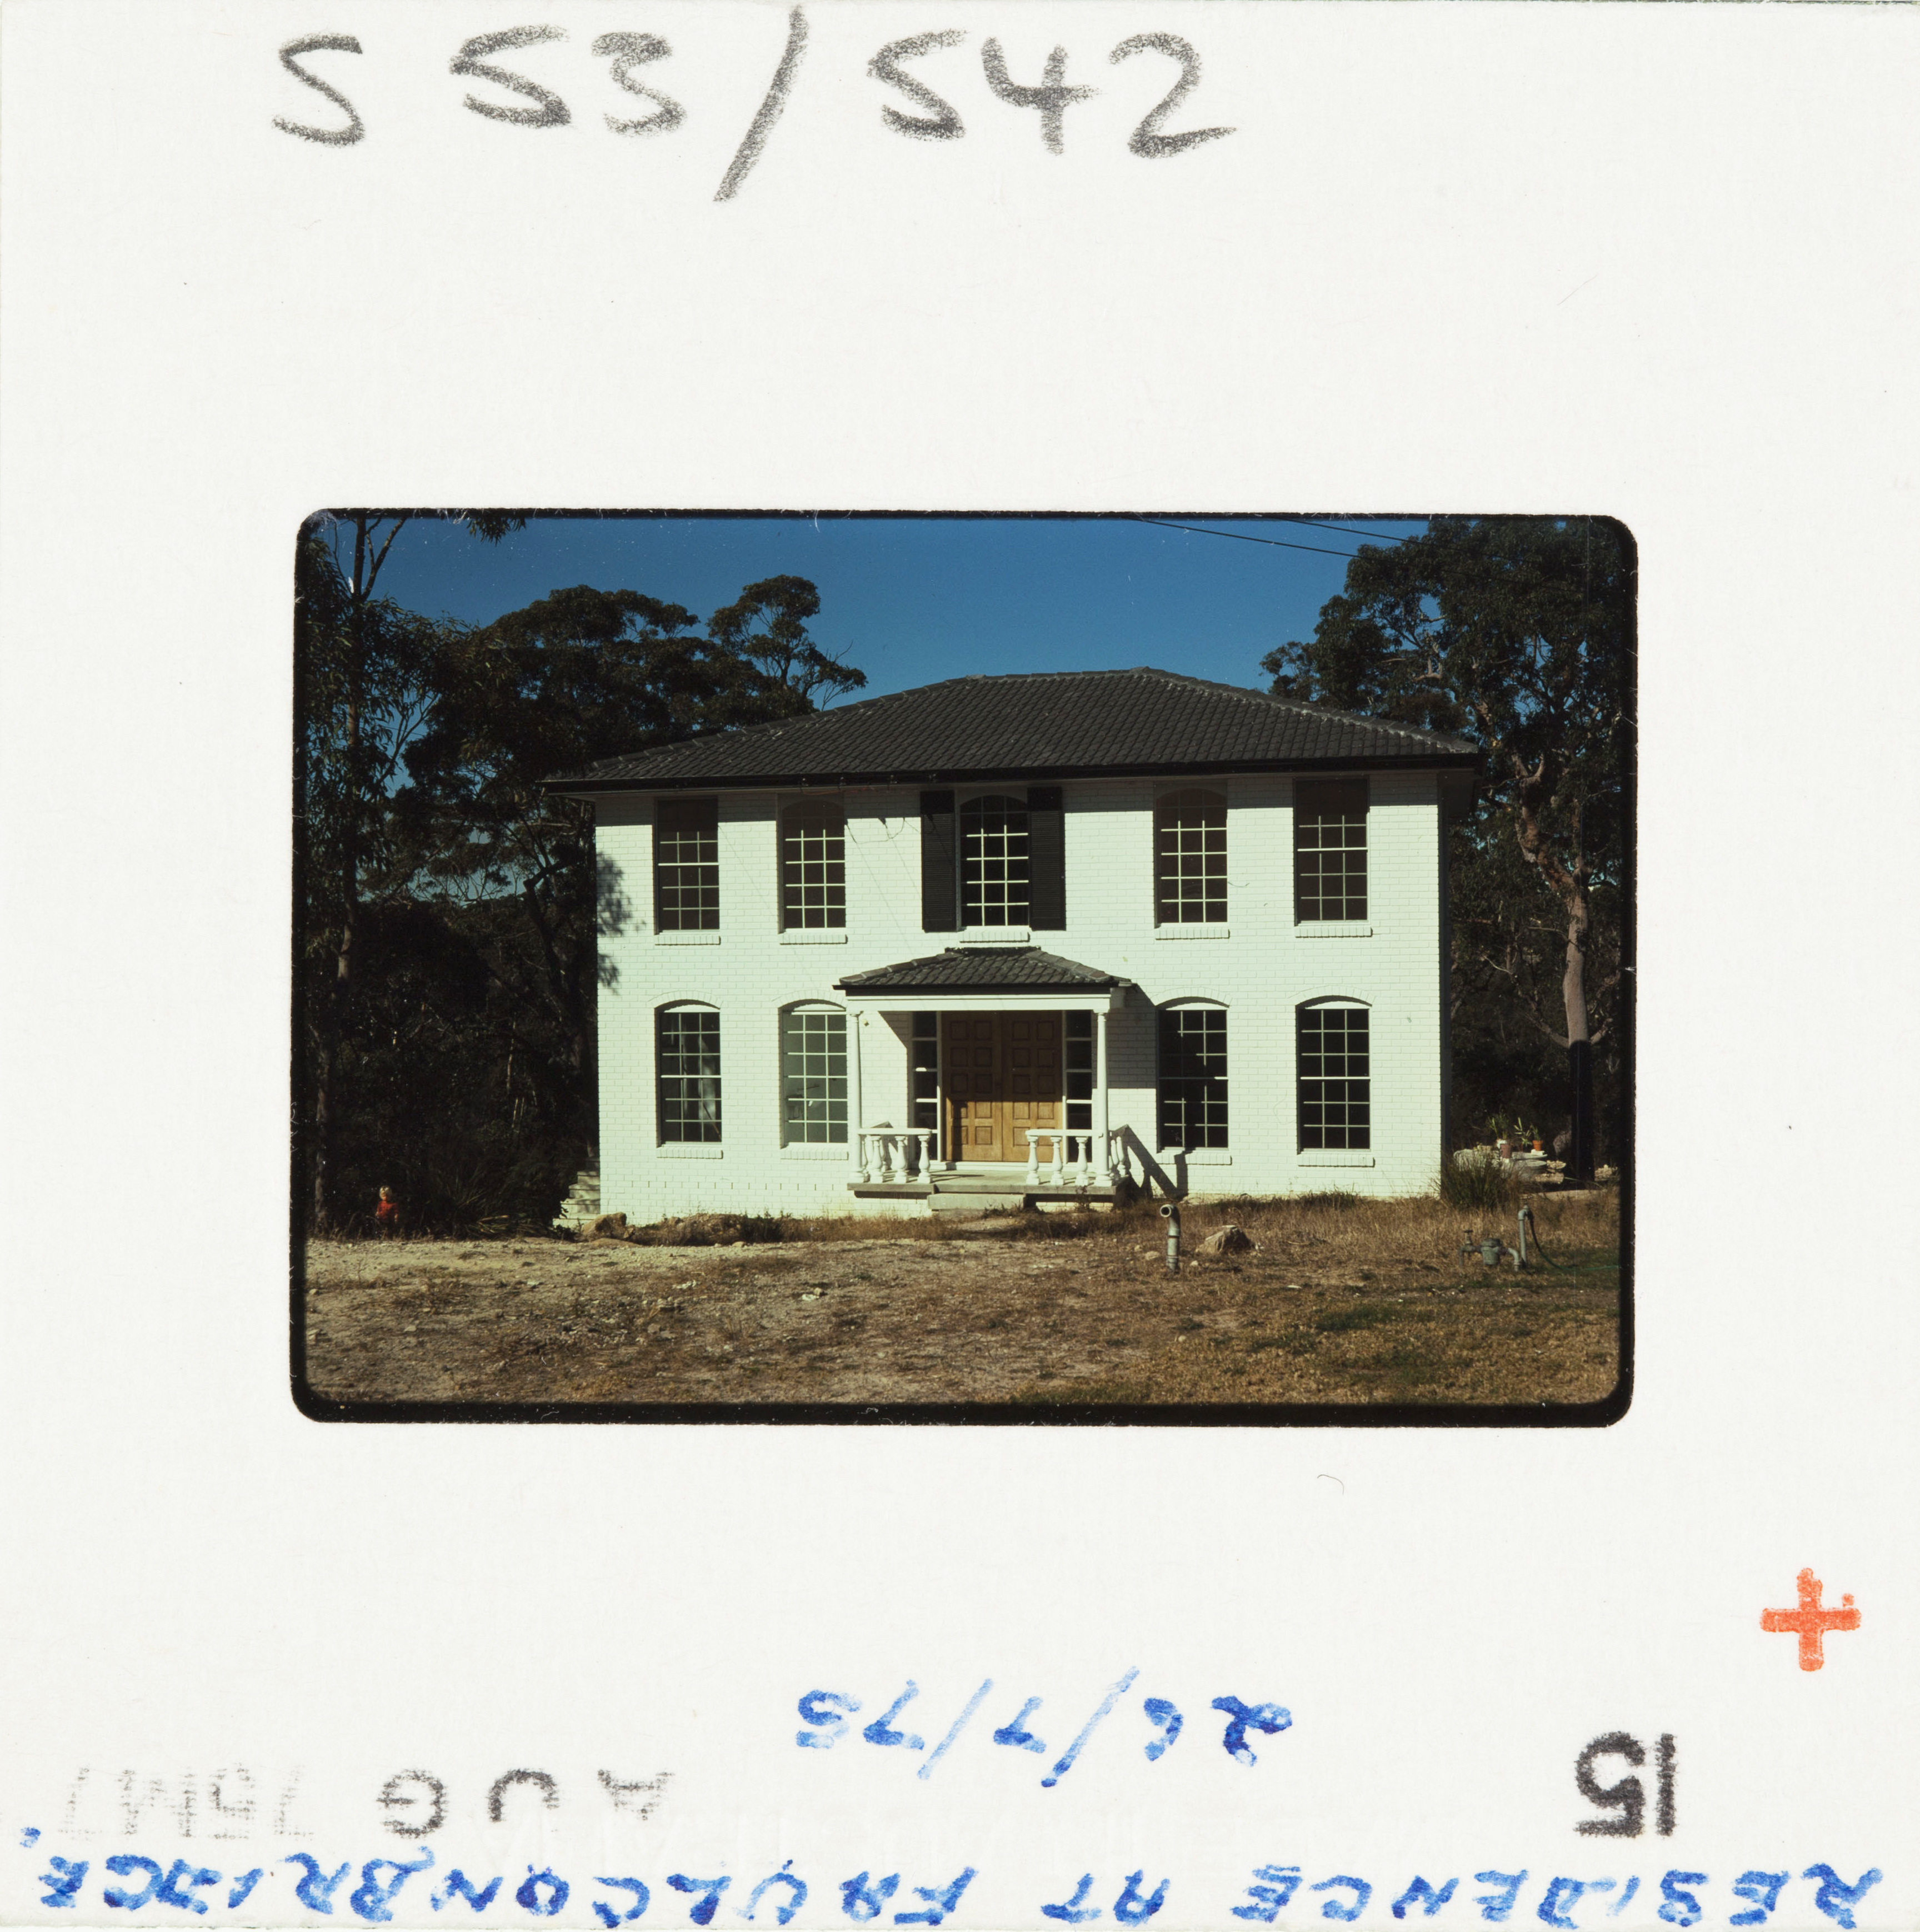 A 70s Kodak colour slide; a white brick house newly built with dry, grassless front yard.